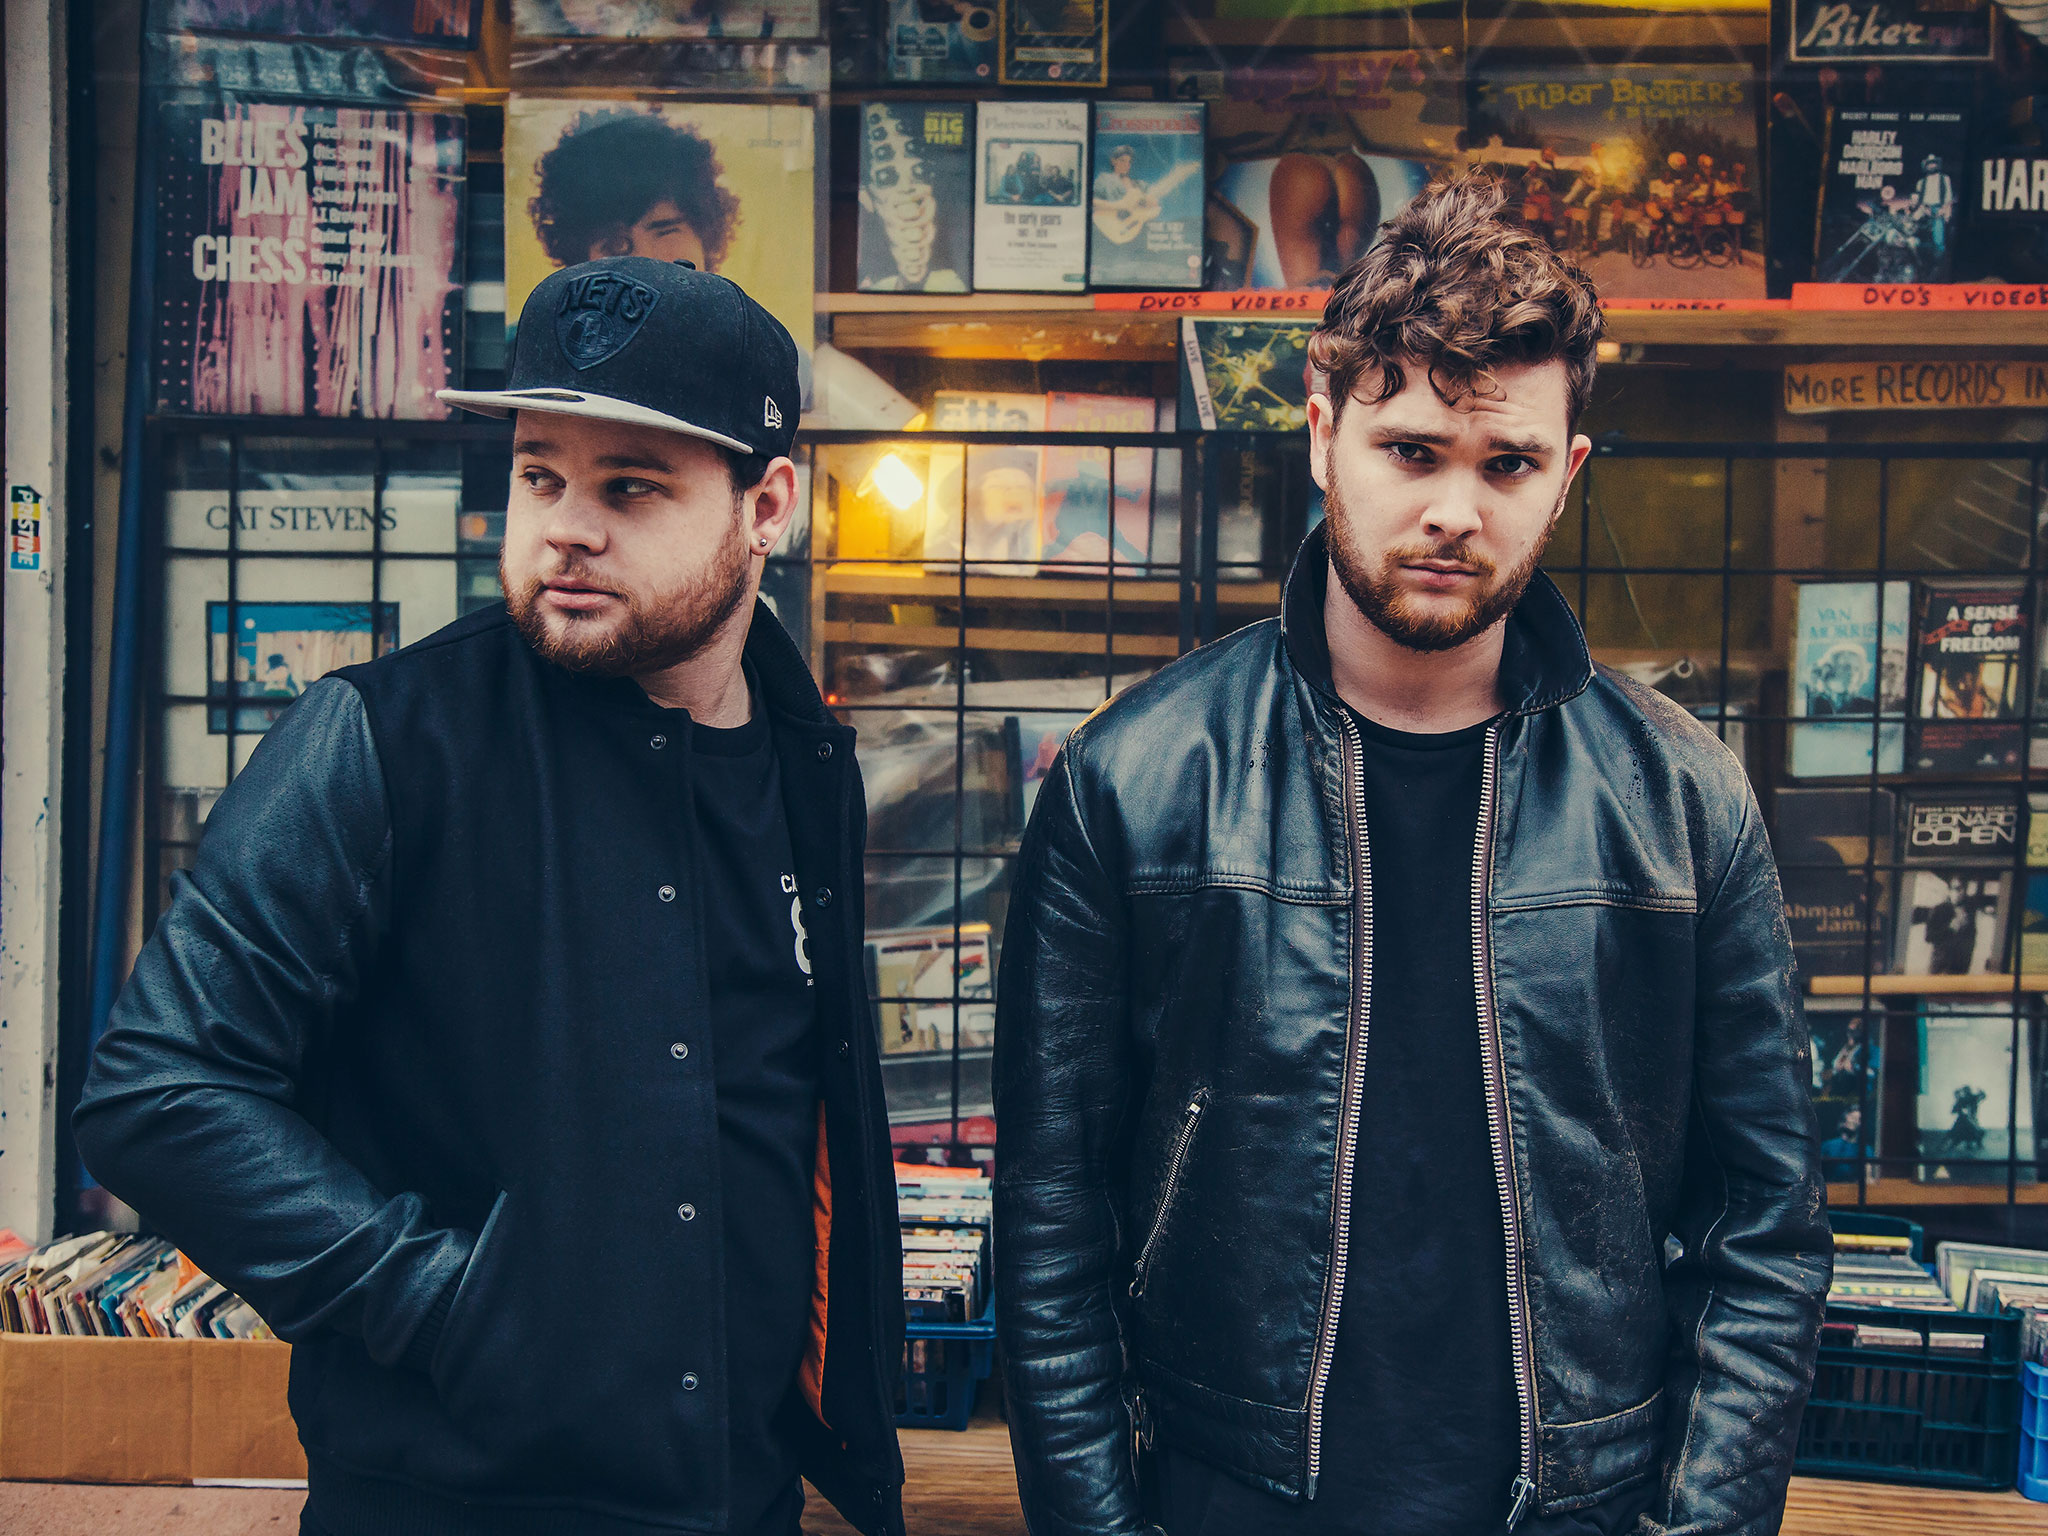 Ben Thatcher, left, and Mike Kerr of Royal Blood